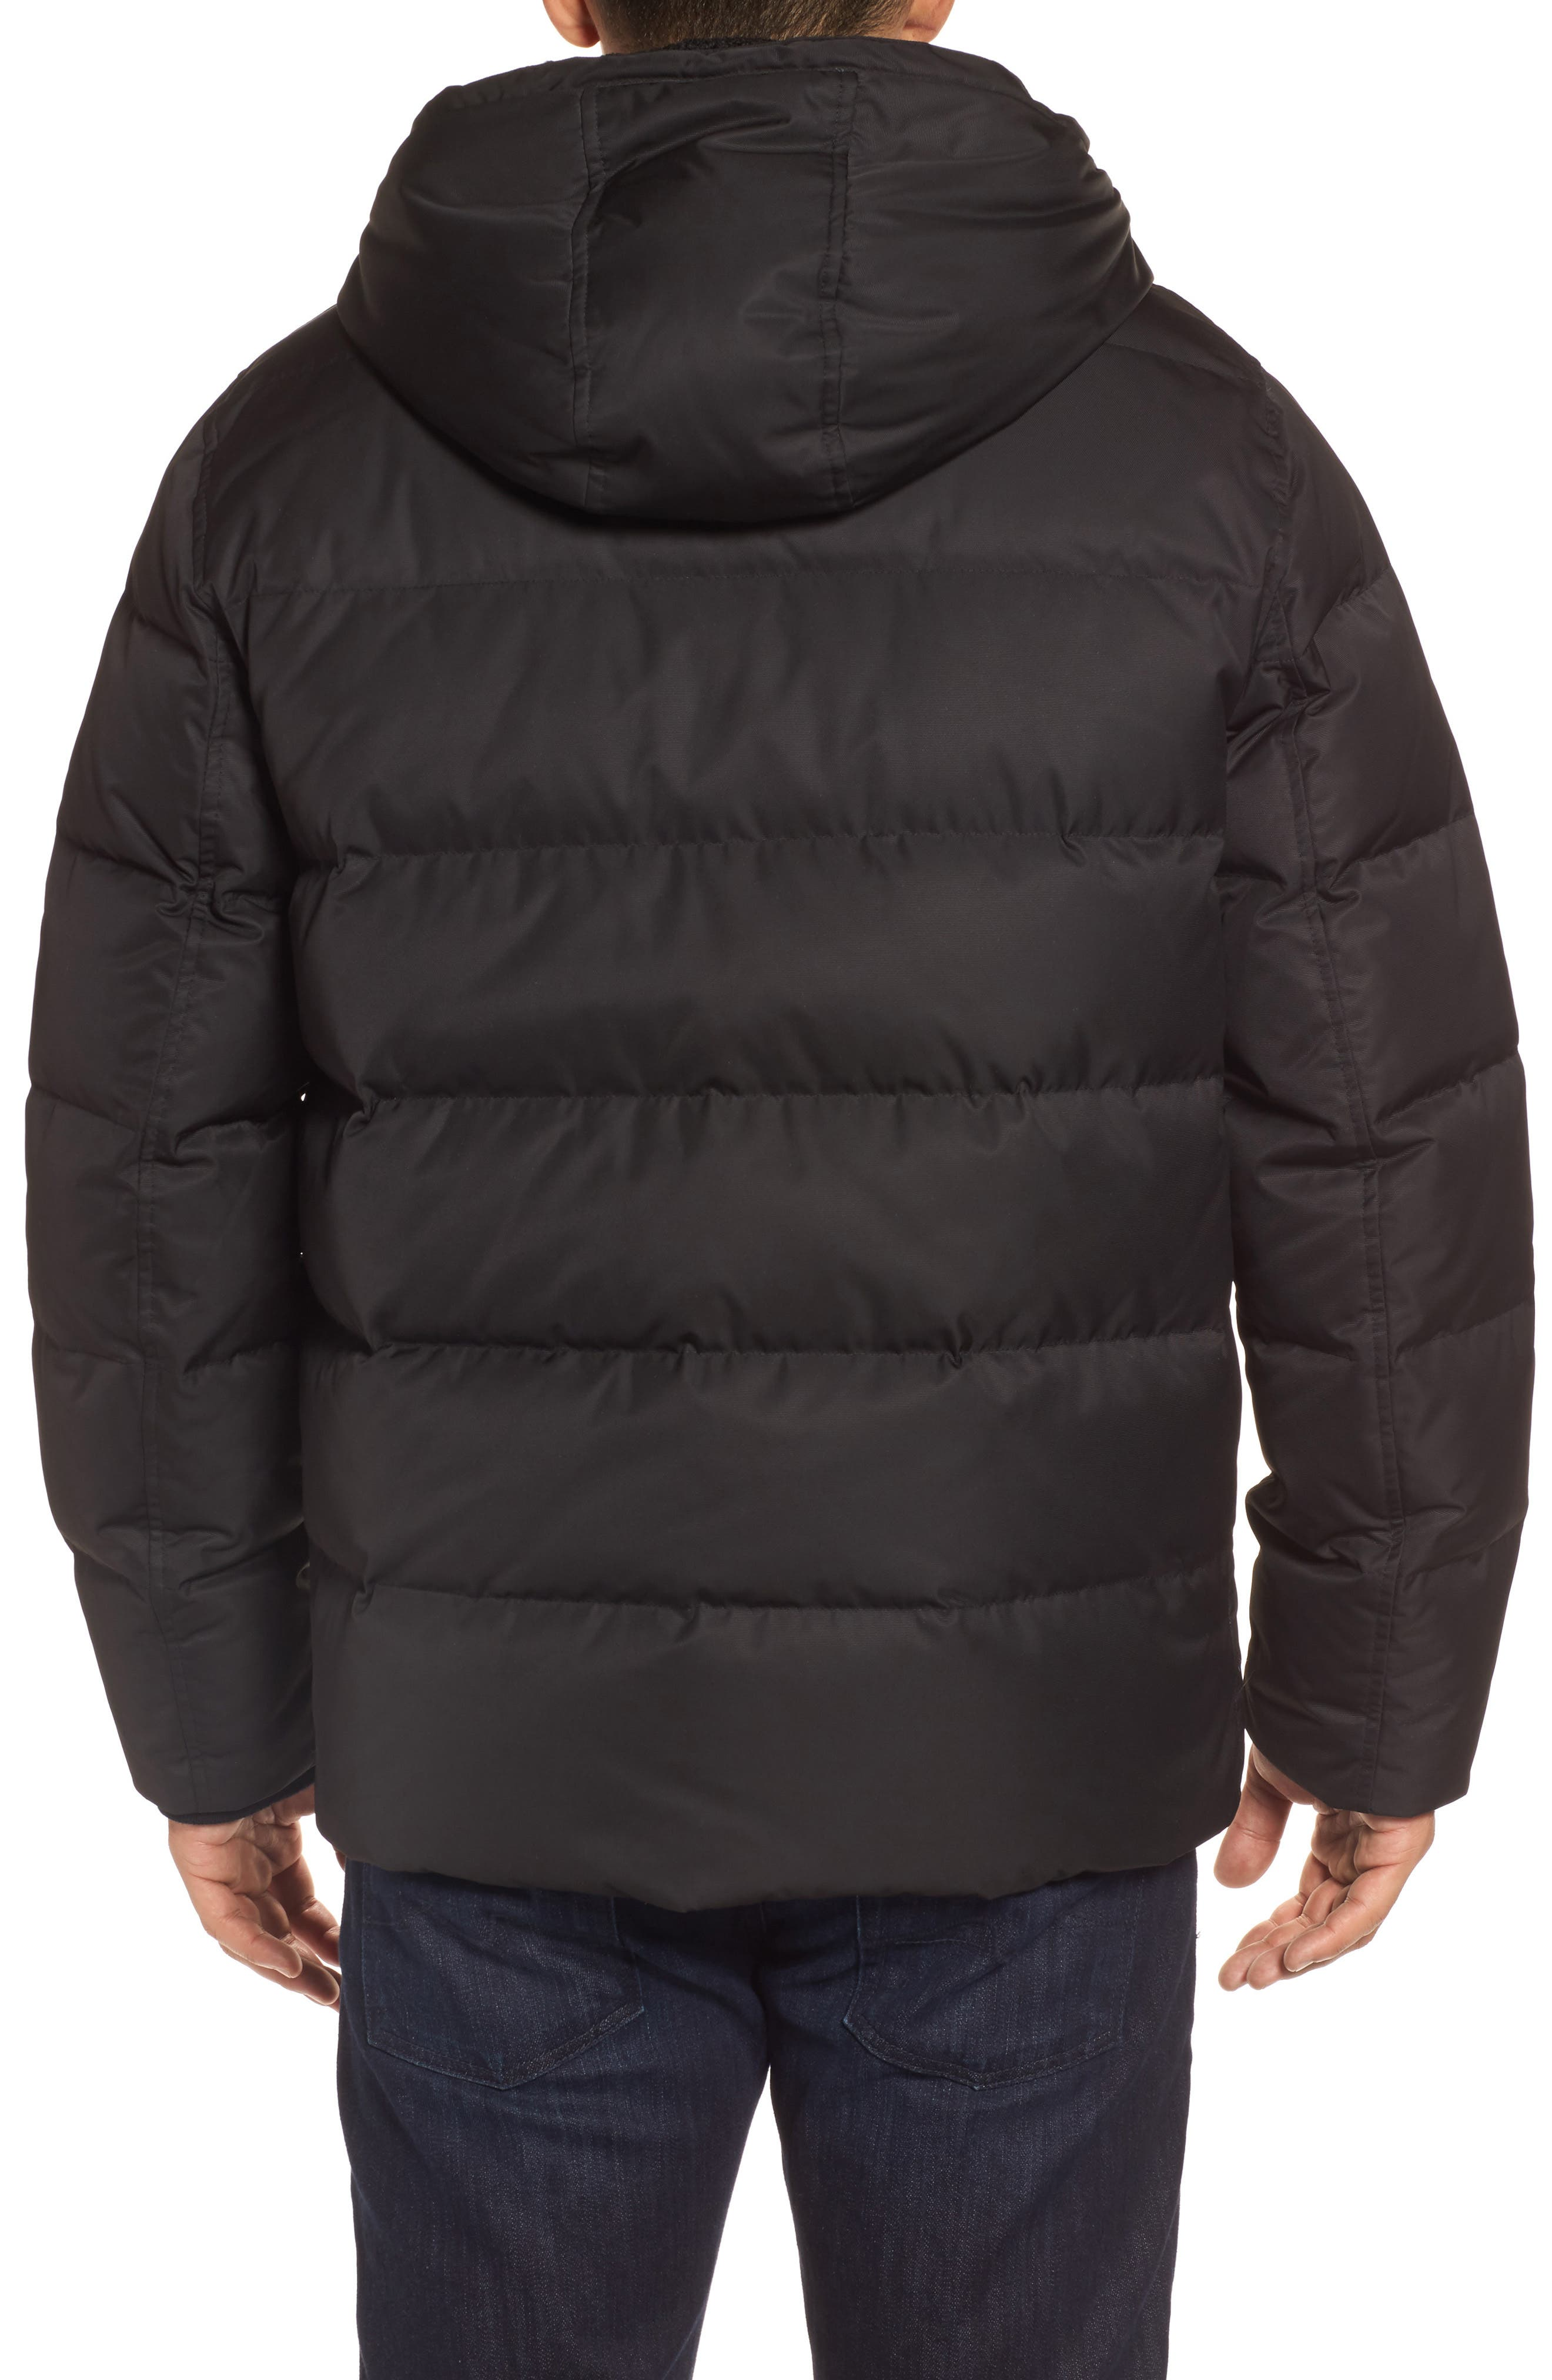 Groton Slim Down Jacket with Faux Shearling Lining,                             Alternate thumbnail 3, color,